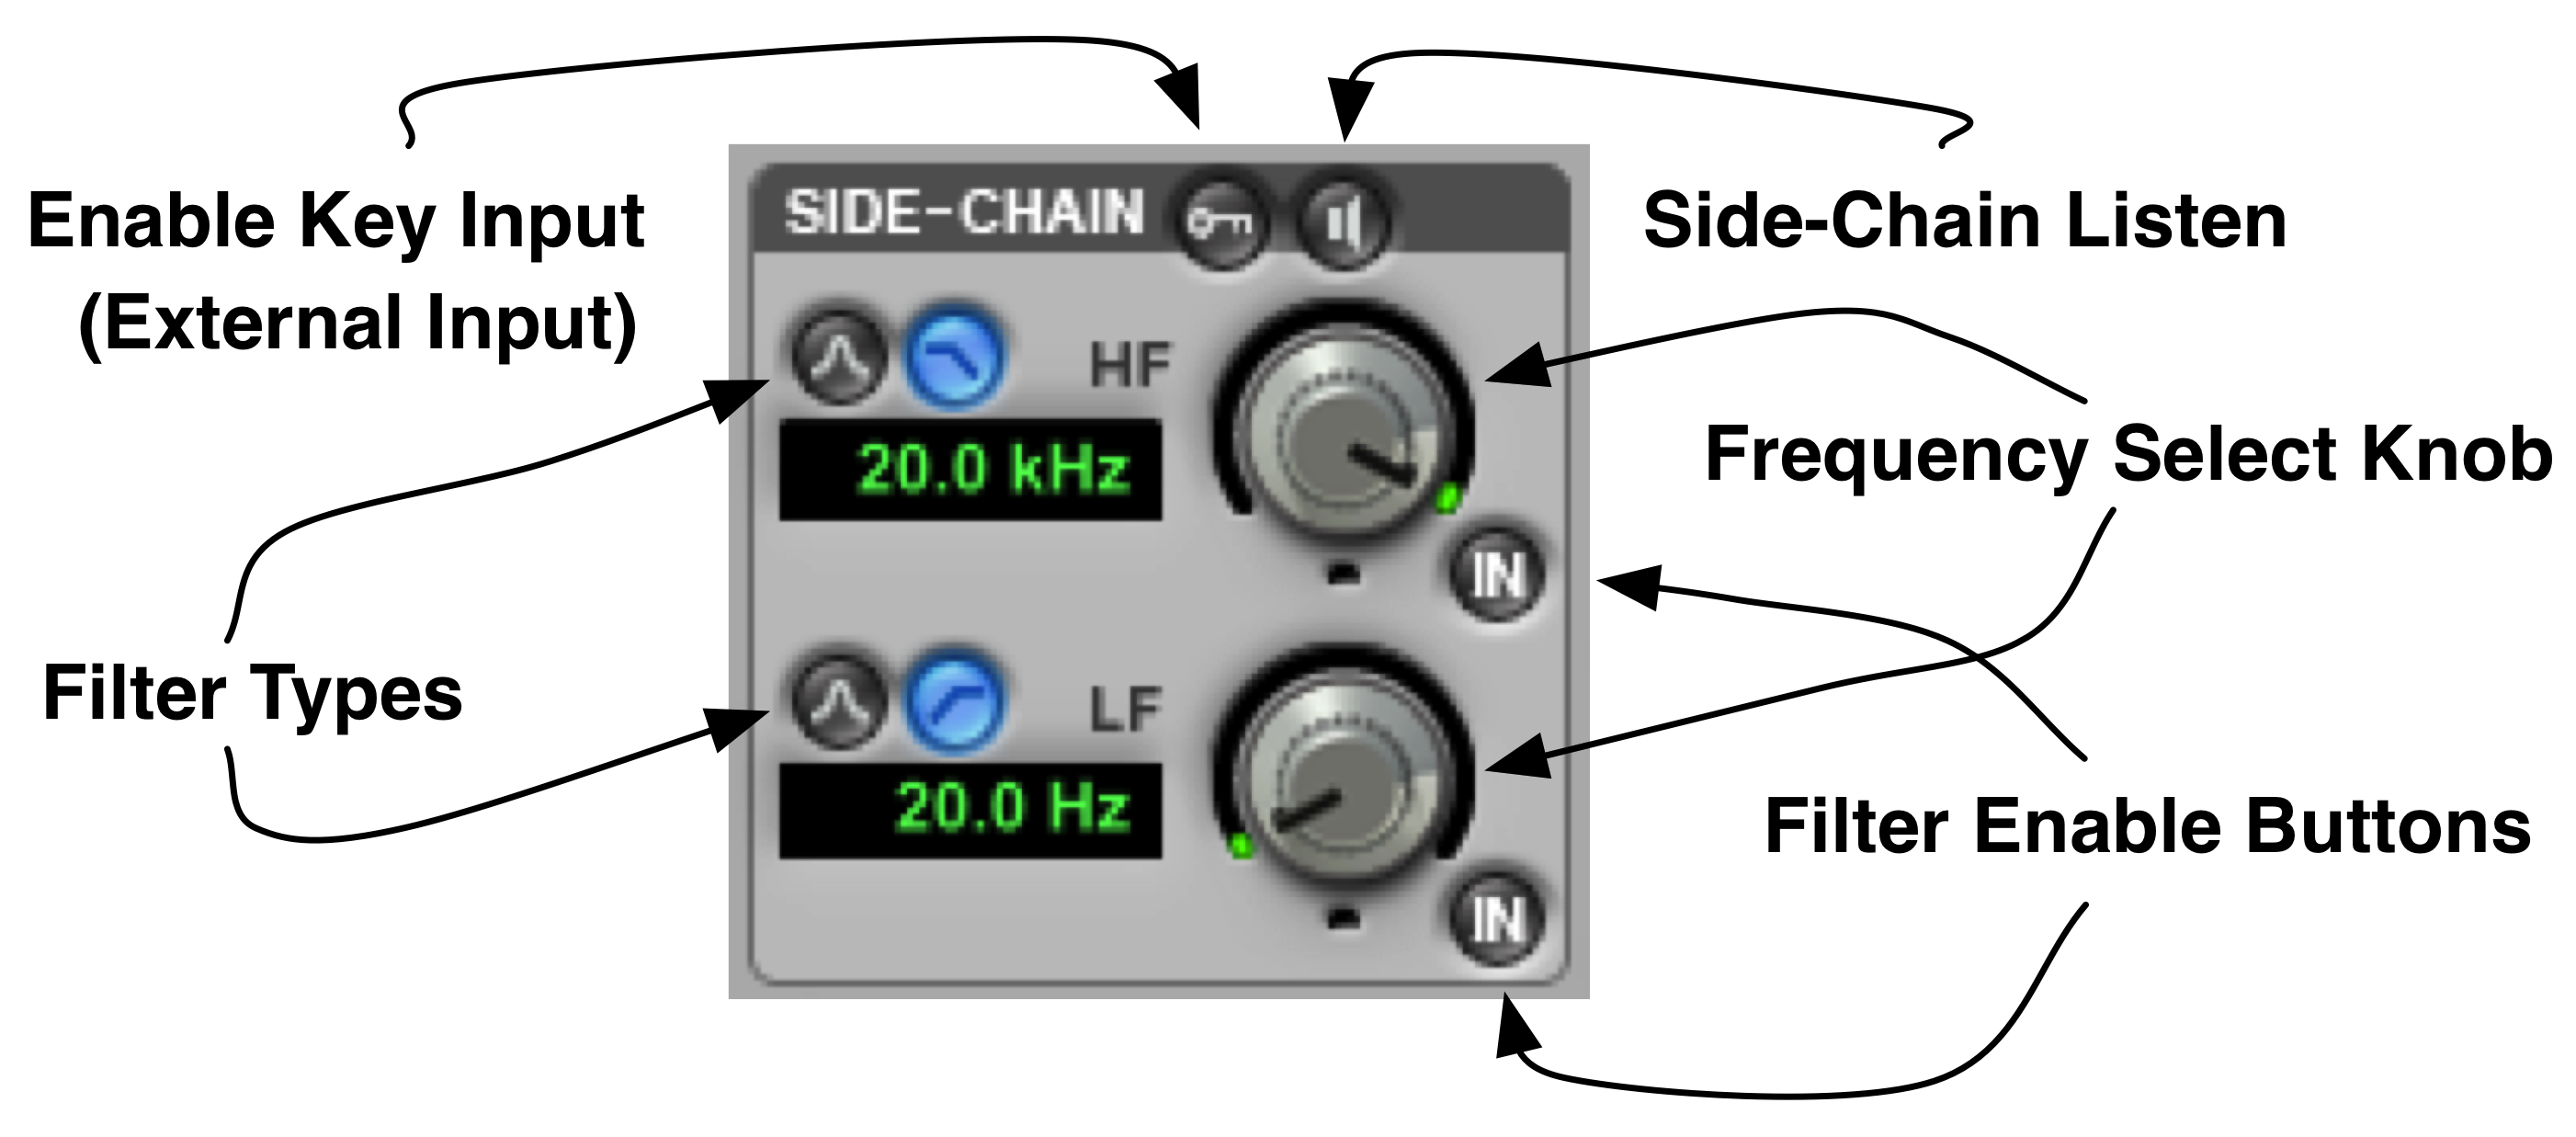 Using sidechain routing in pro tools help techniques promedia place the compressor on an insert on the sessions master fader play the song xflitez Gallery